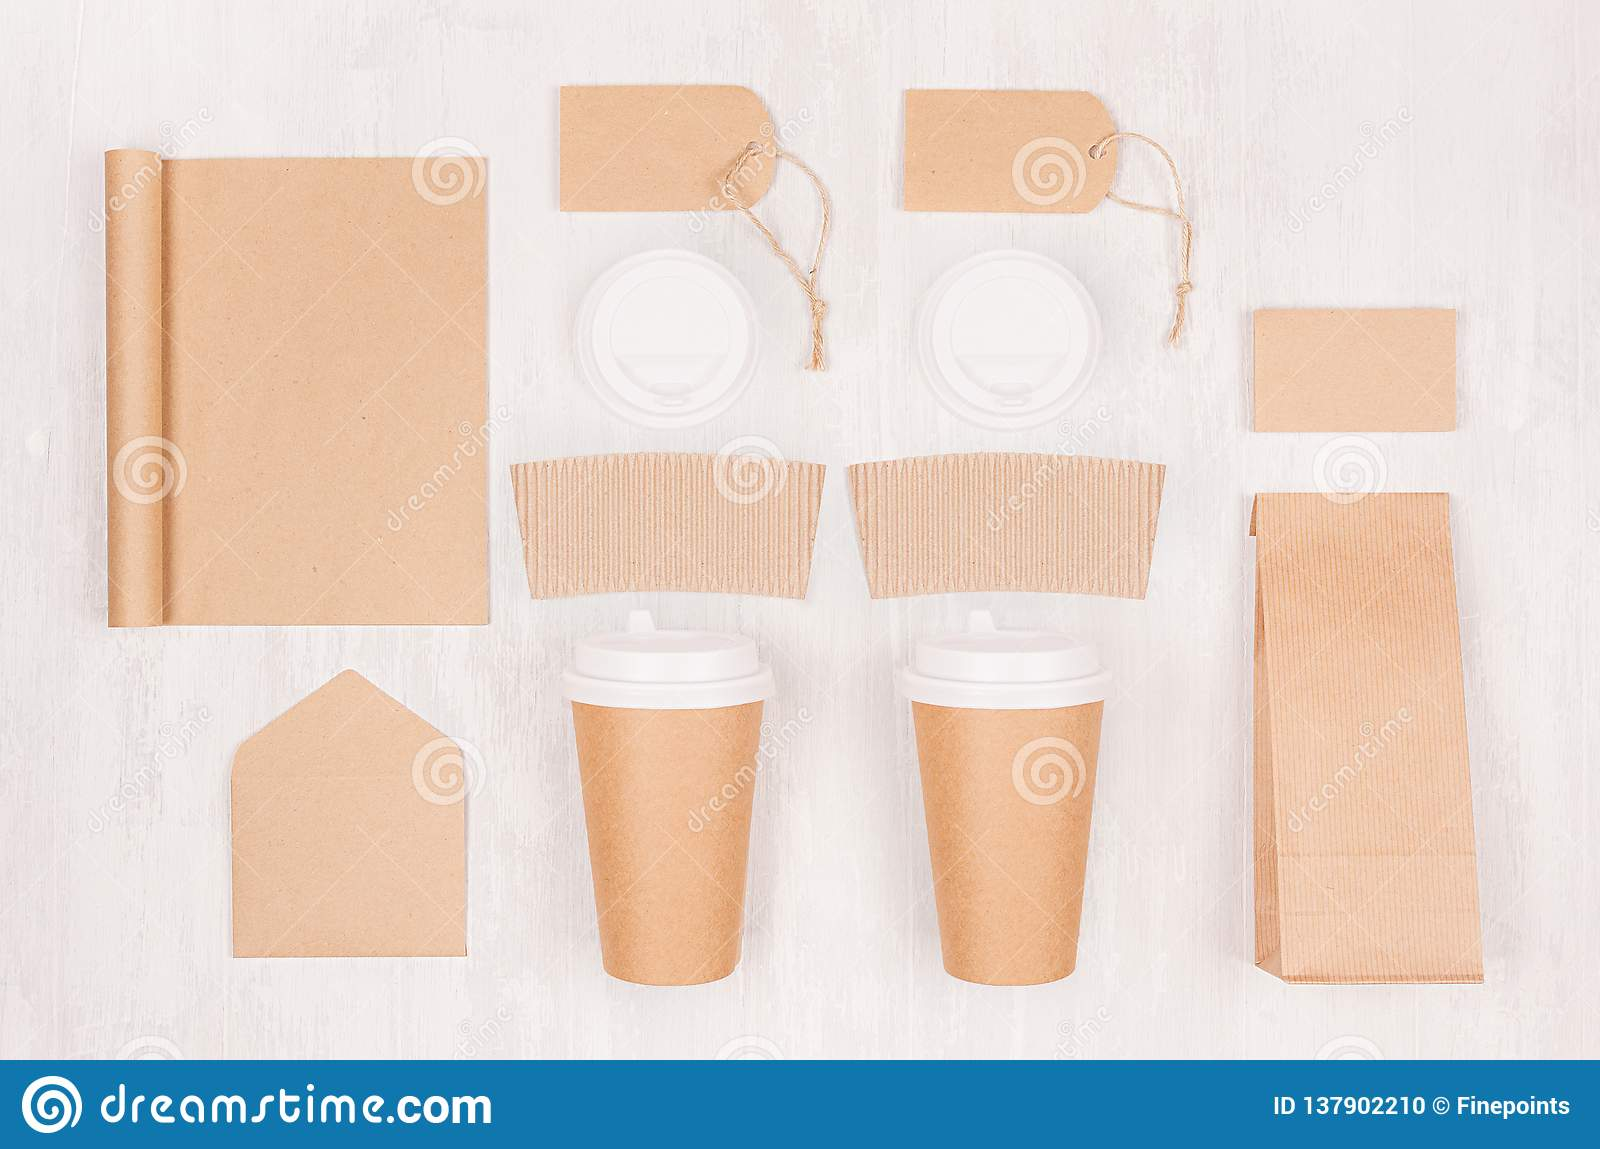 Coffee shop template for branding identity - two brown paper cups with blank notebook, packet, label, card, cap, envelope on wood.